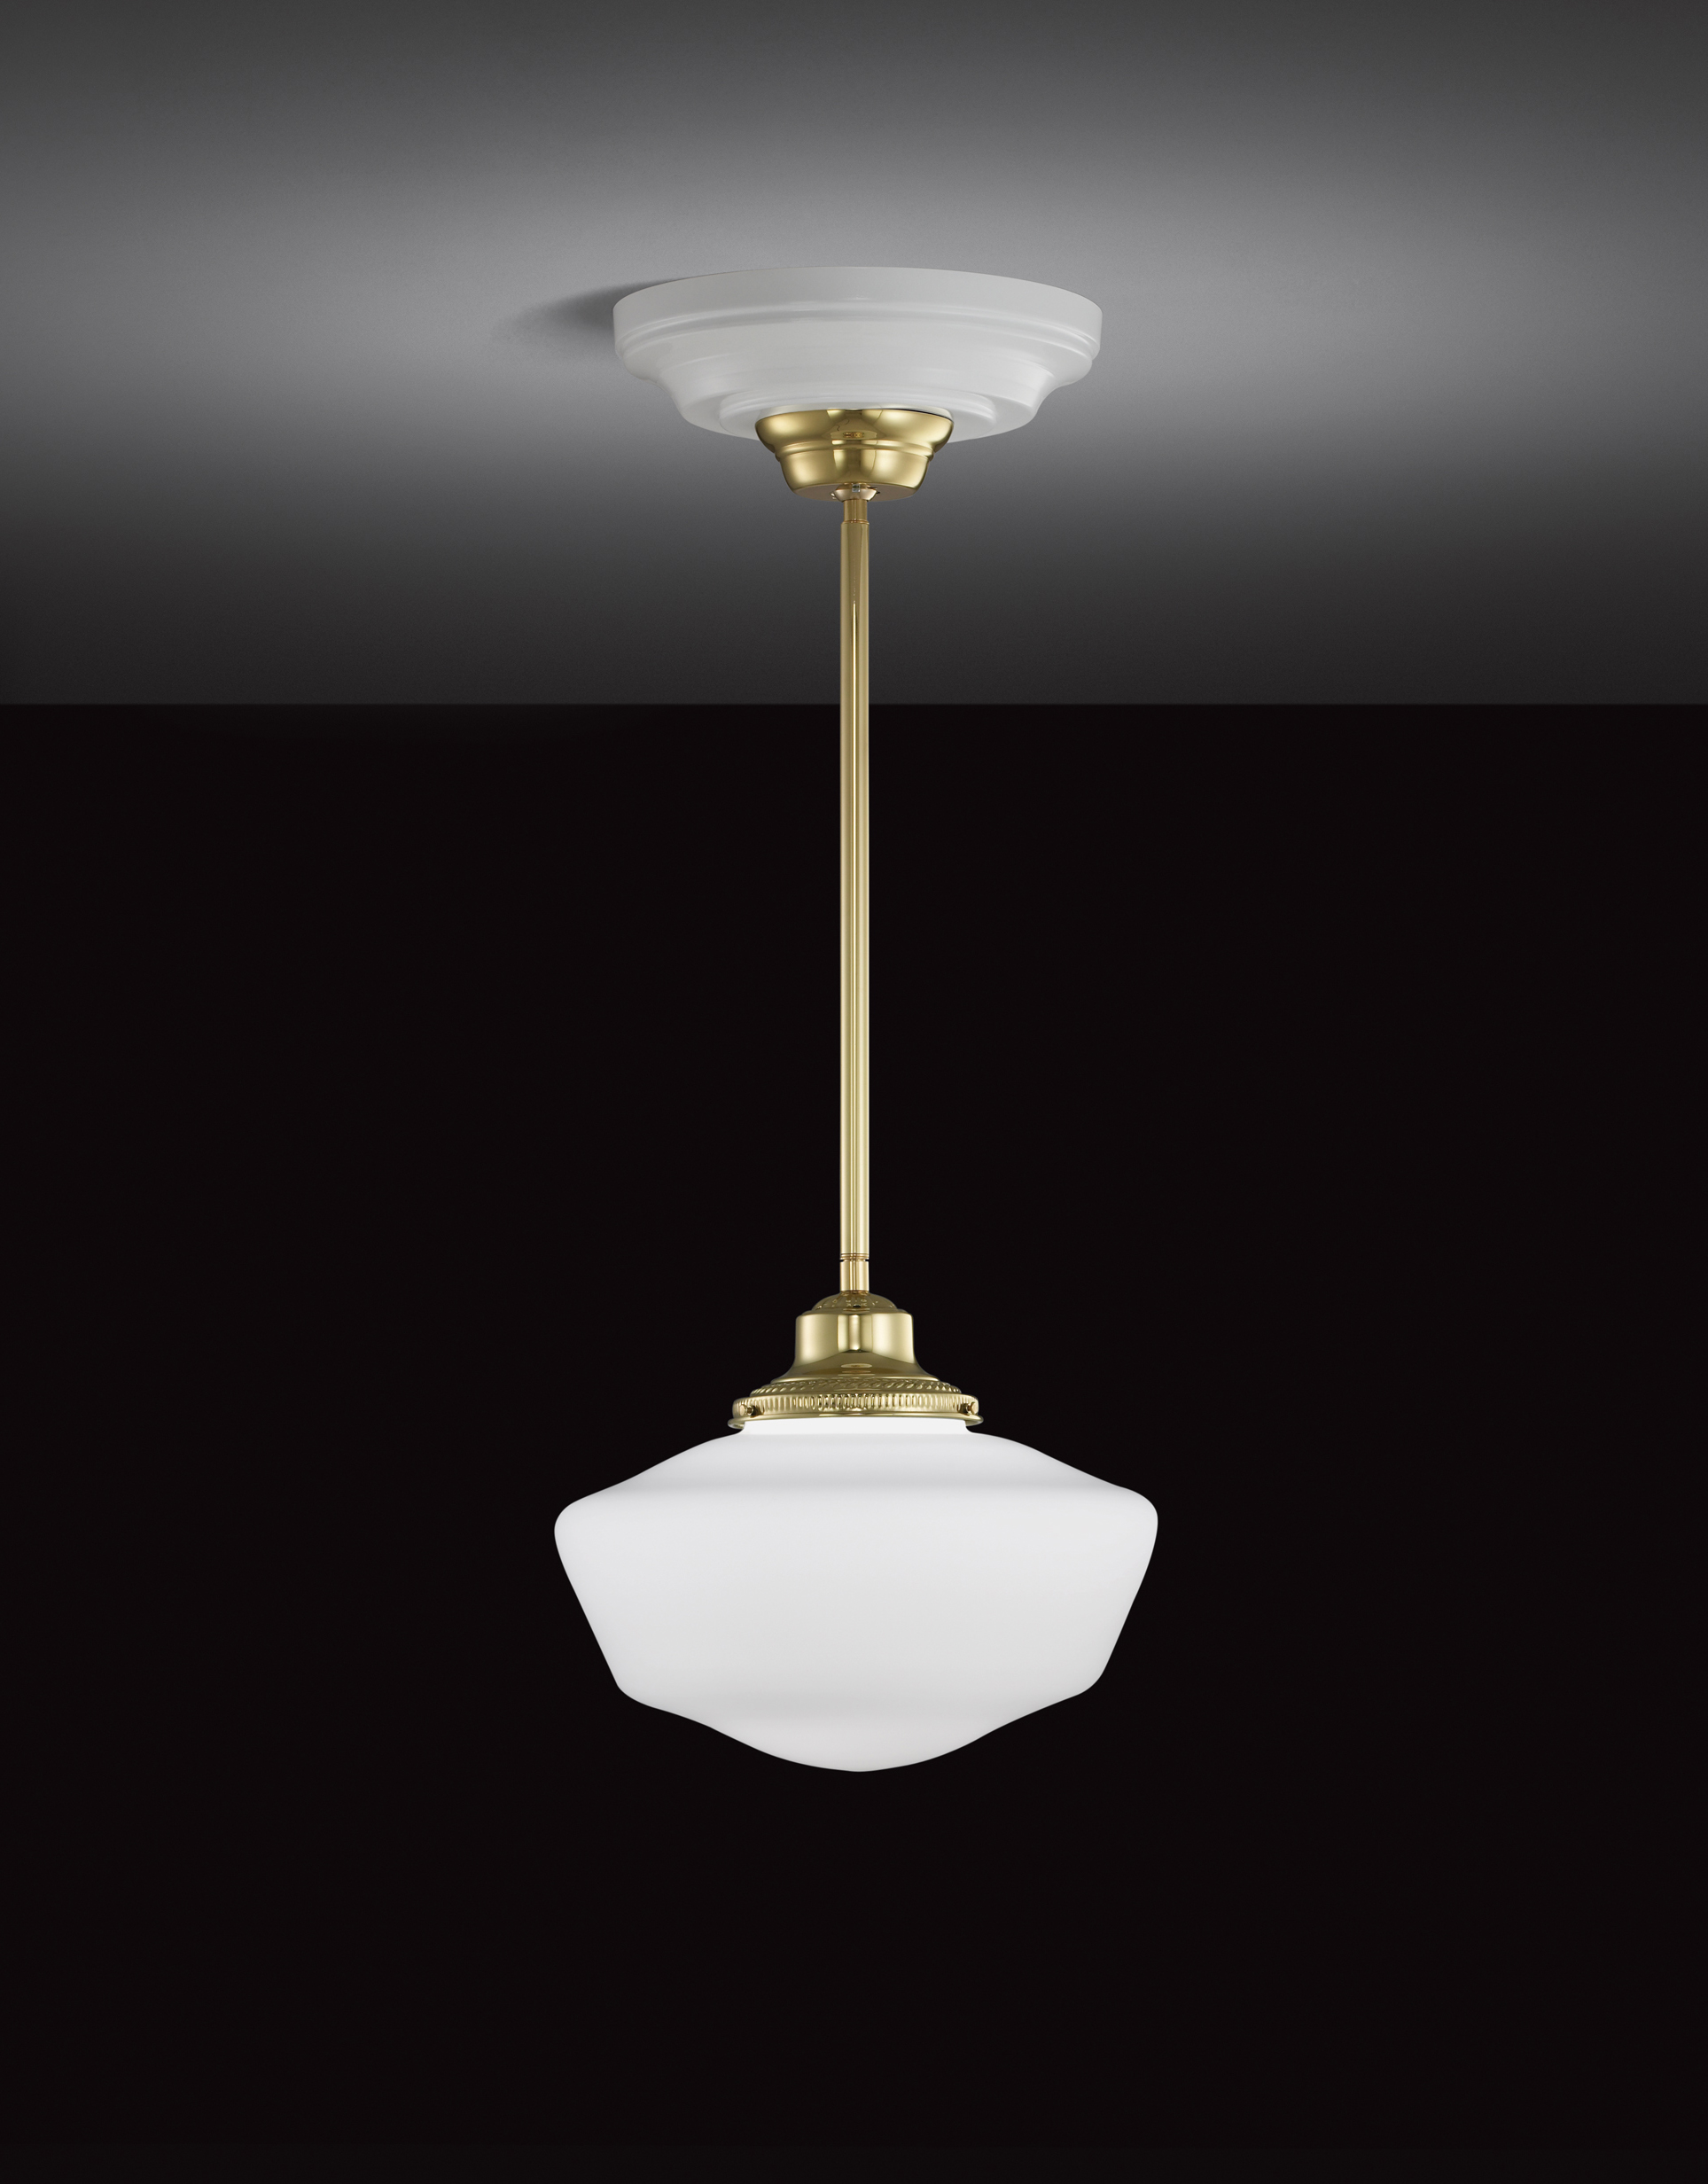 Schoolhouse pendant ocl architectural lighting related fixtures aloadofball Gallery